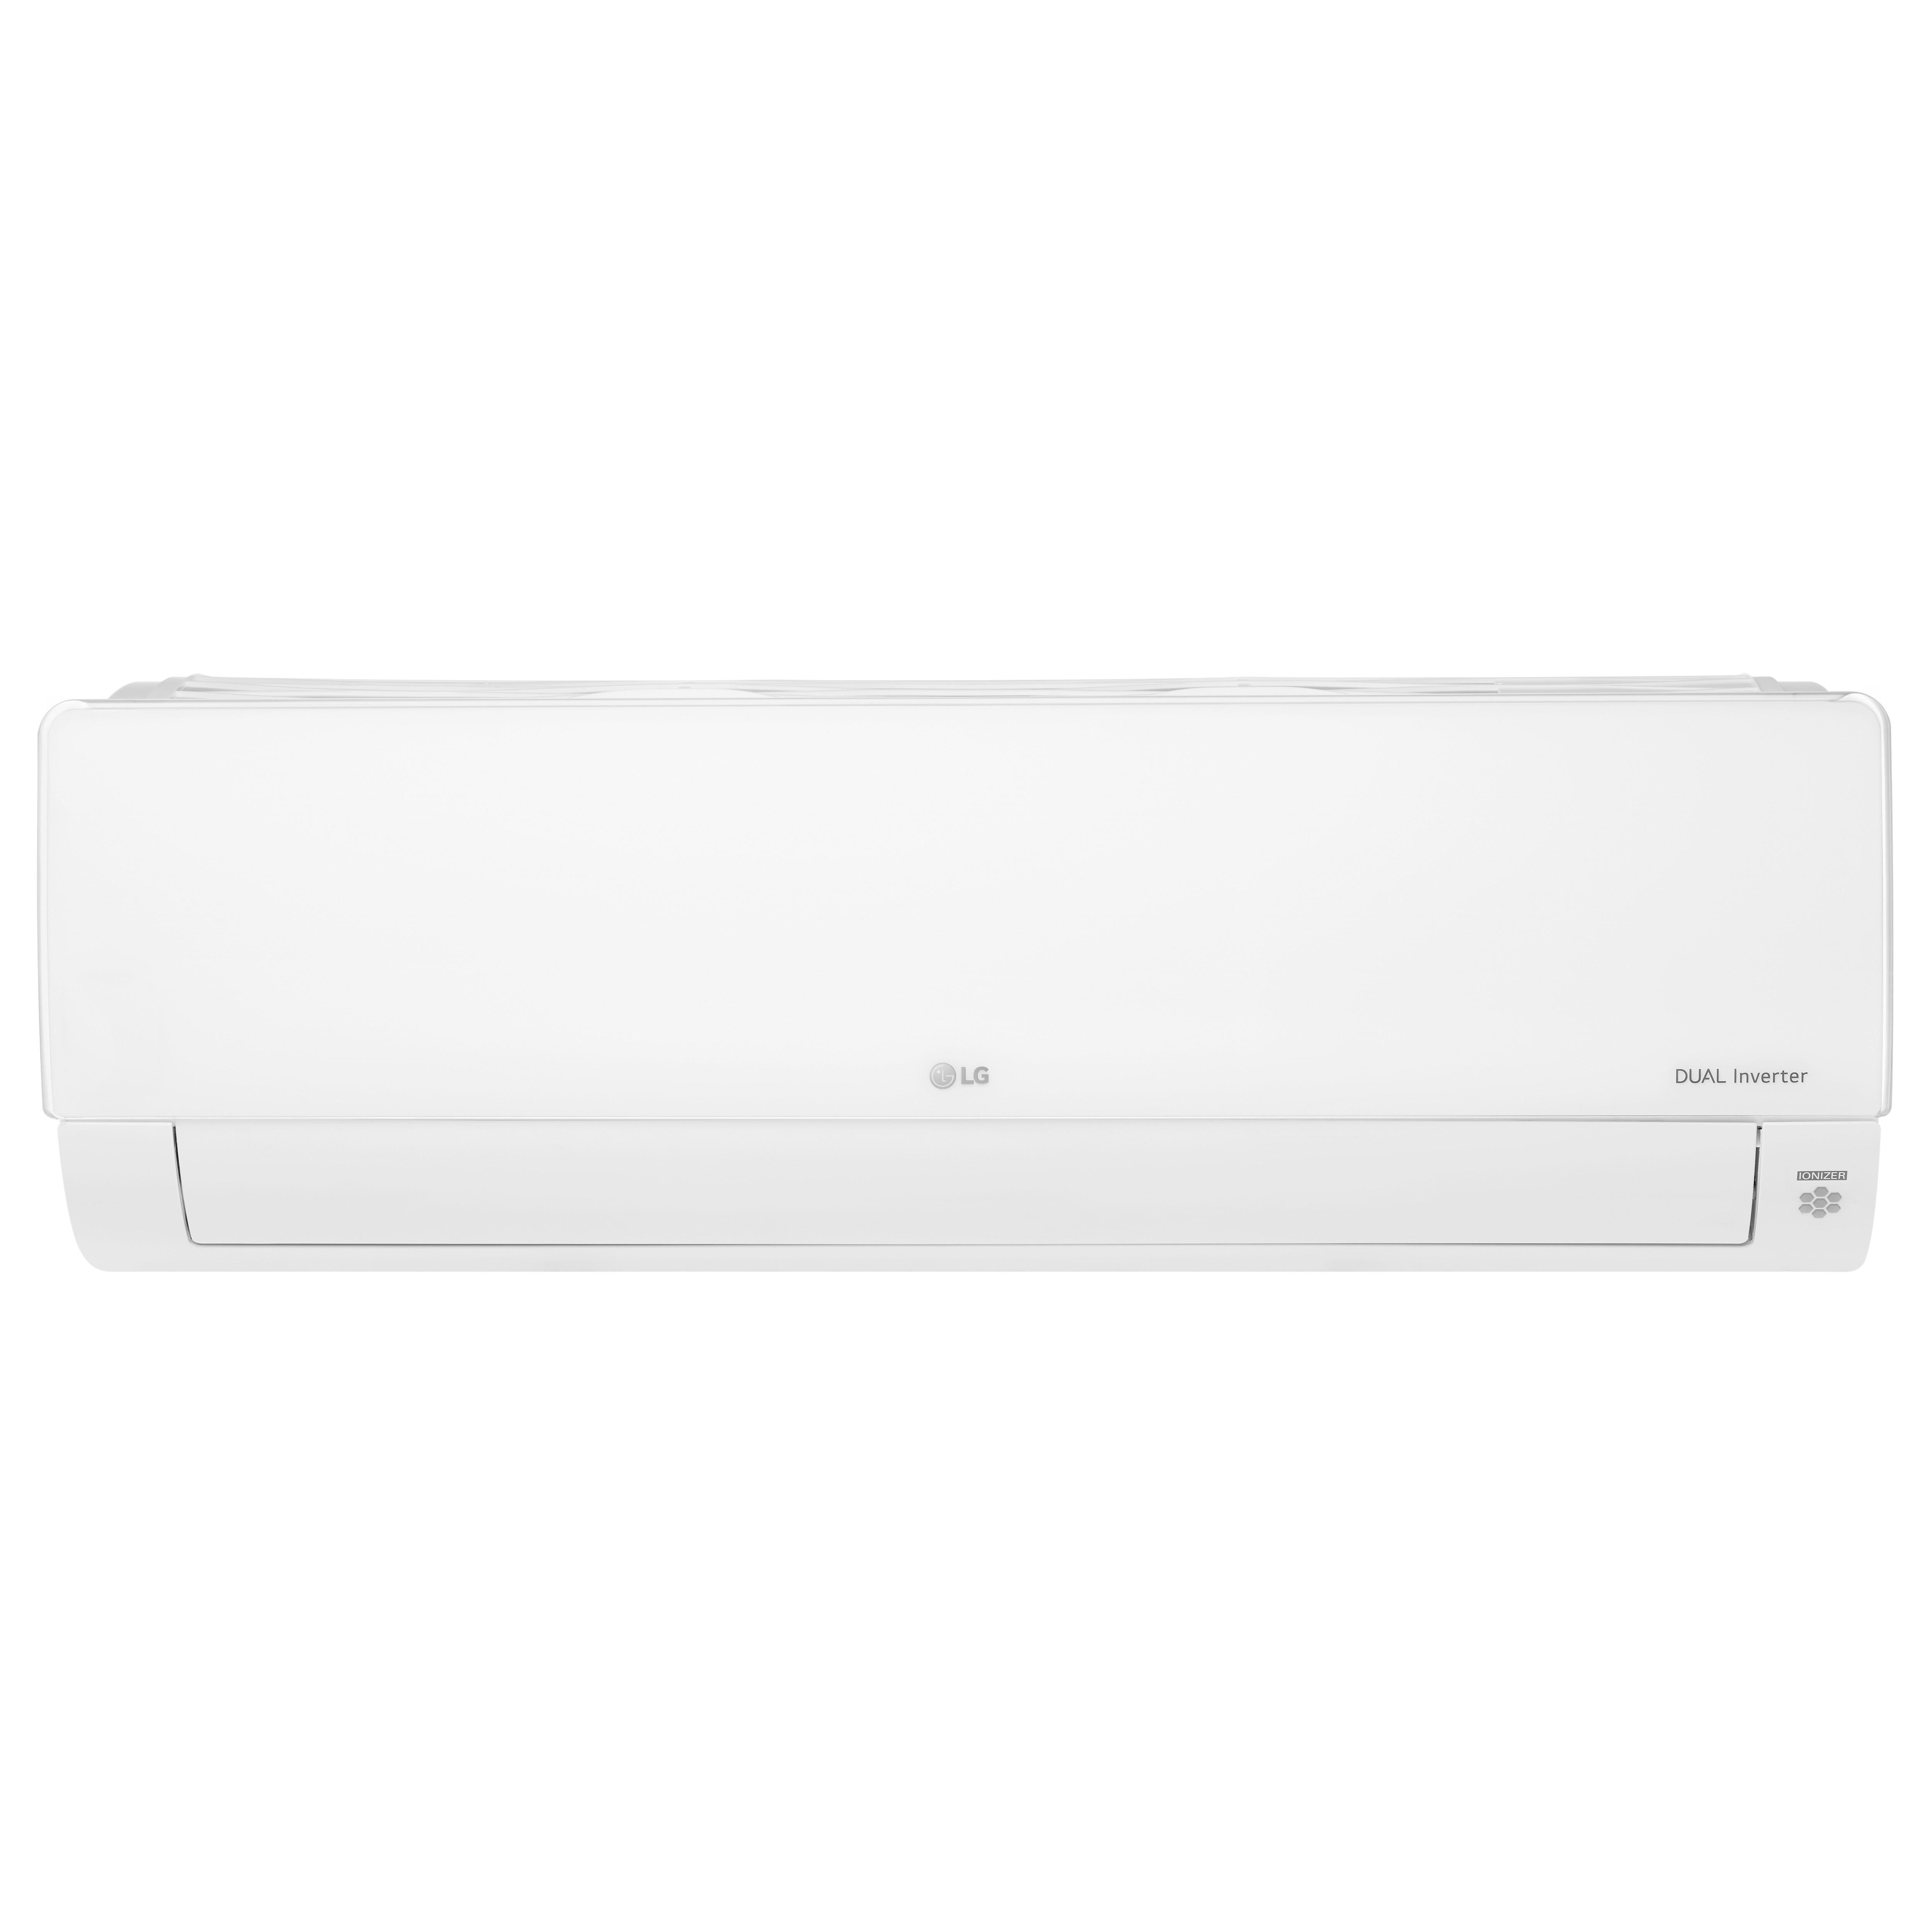 Front view of LG DUALCOOL air conditioner